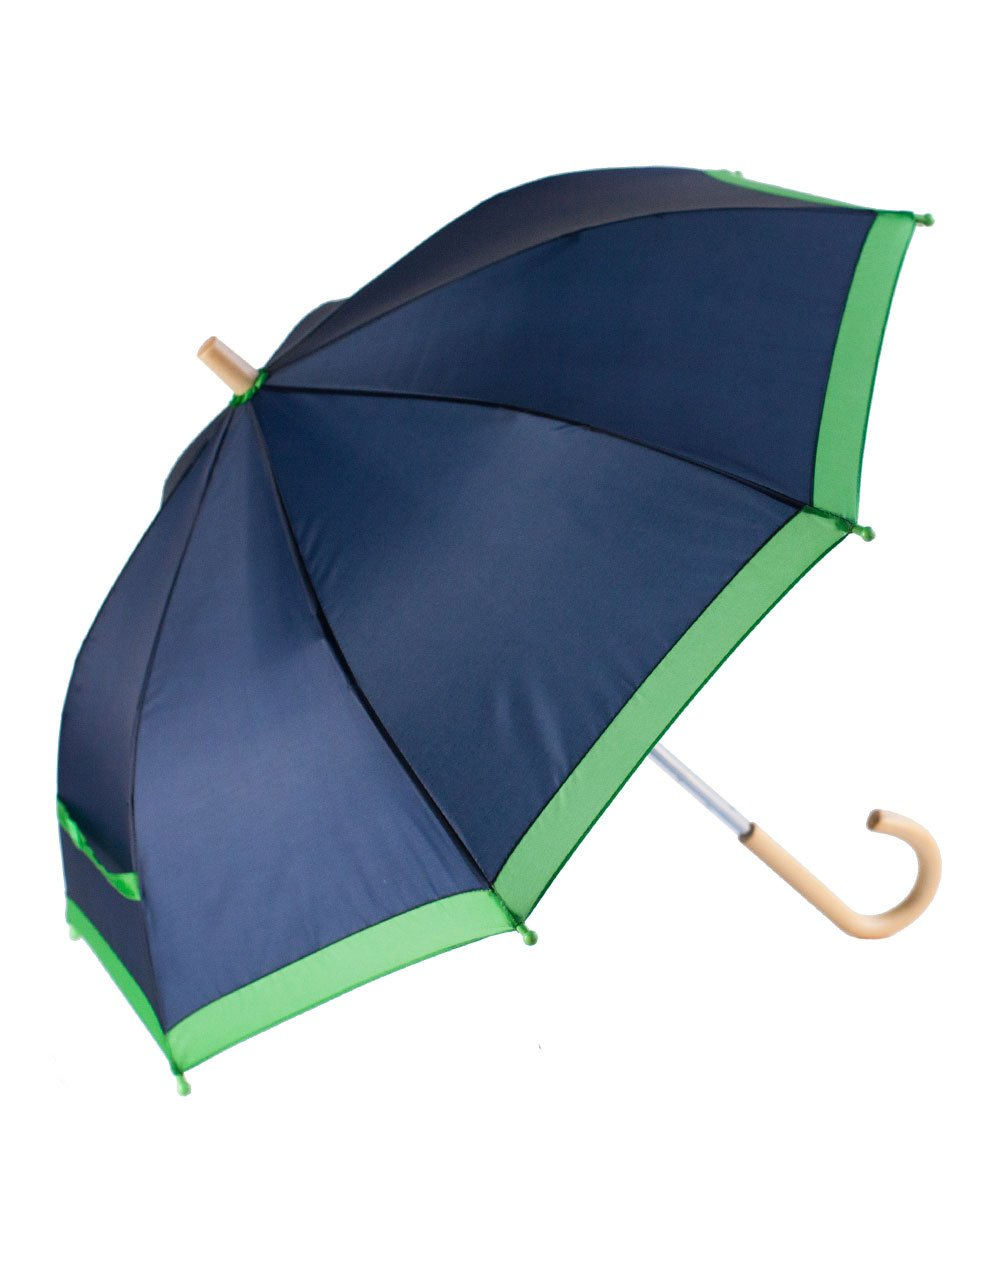 OAKI Double Layer Waterproof Kids Umbrellas with Windproof, UV Protection and C-Shaped Kid's Easy Hold Handle (Navy)